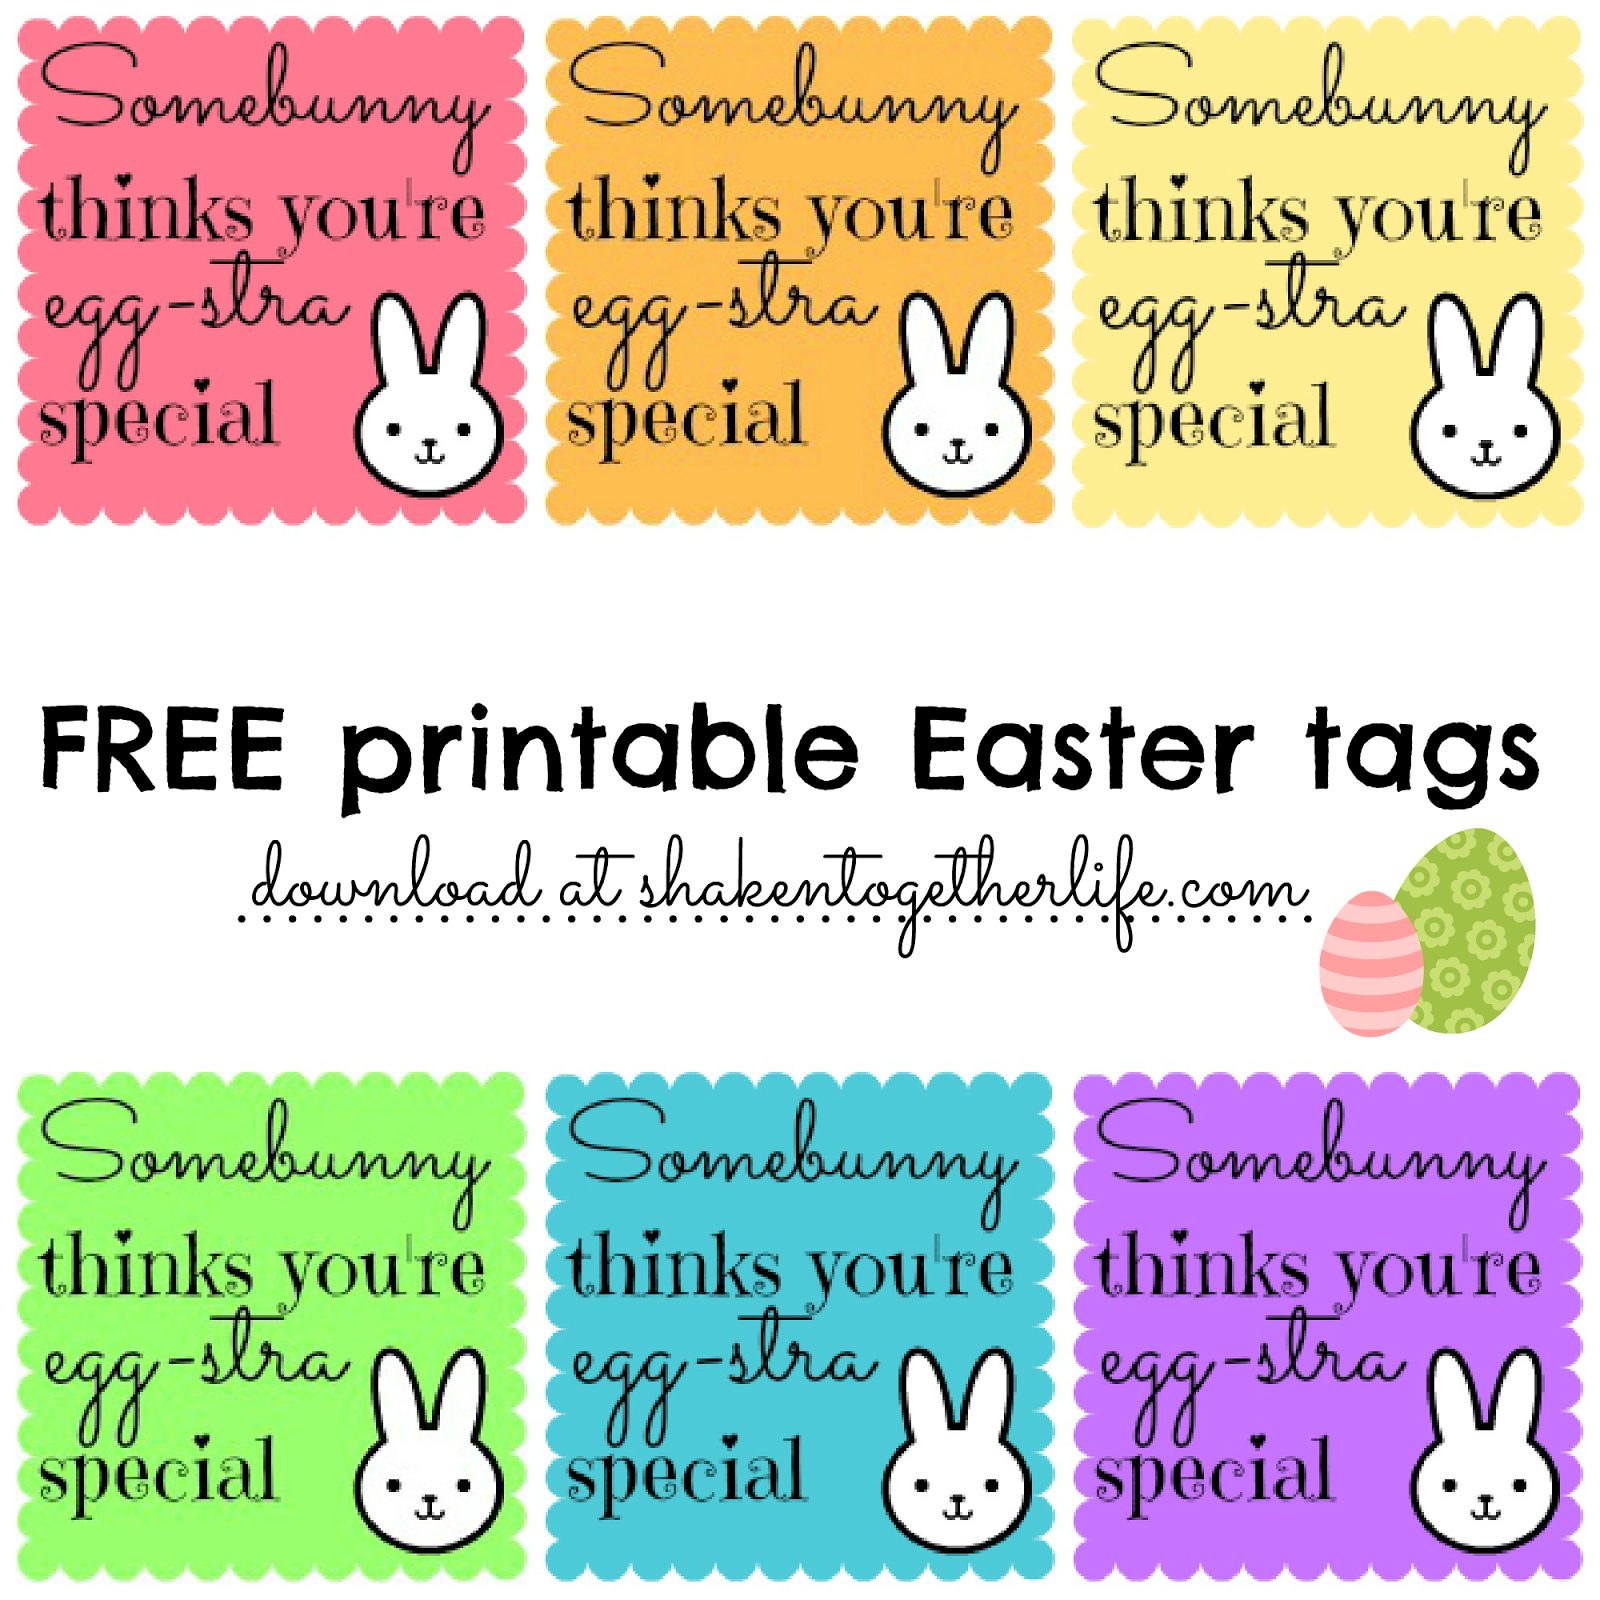 Bunny lip balm gifts for easter printable tags easter favorite bunny lip balm gifts for easter printable tags negle Image collections